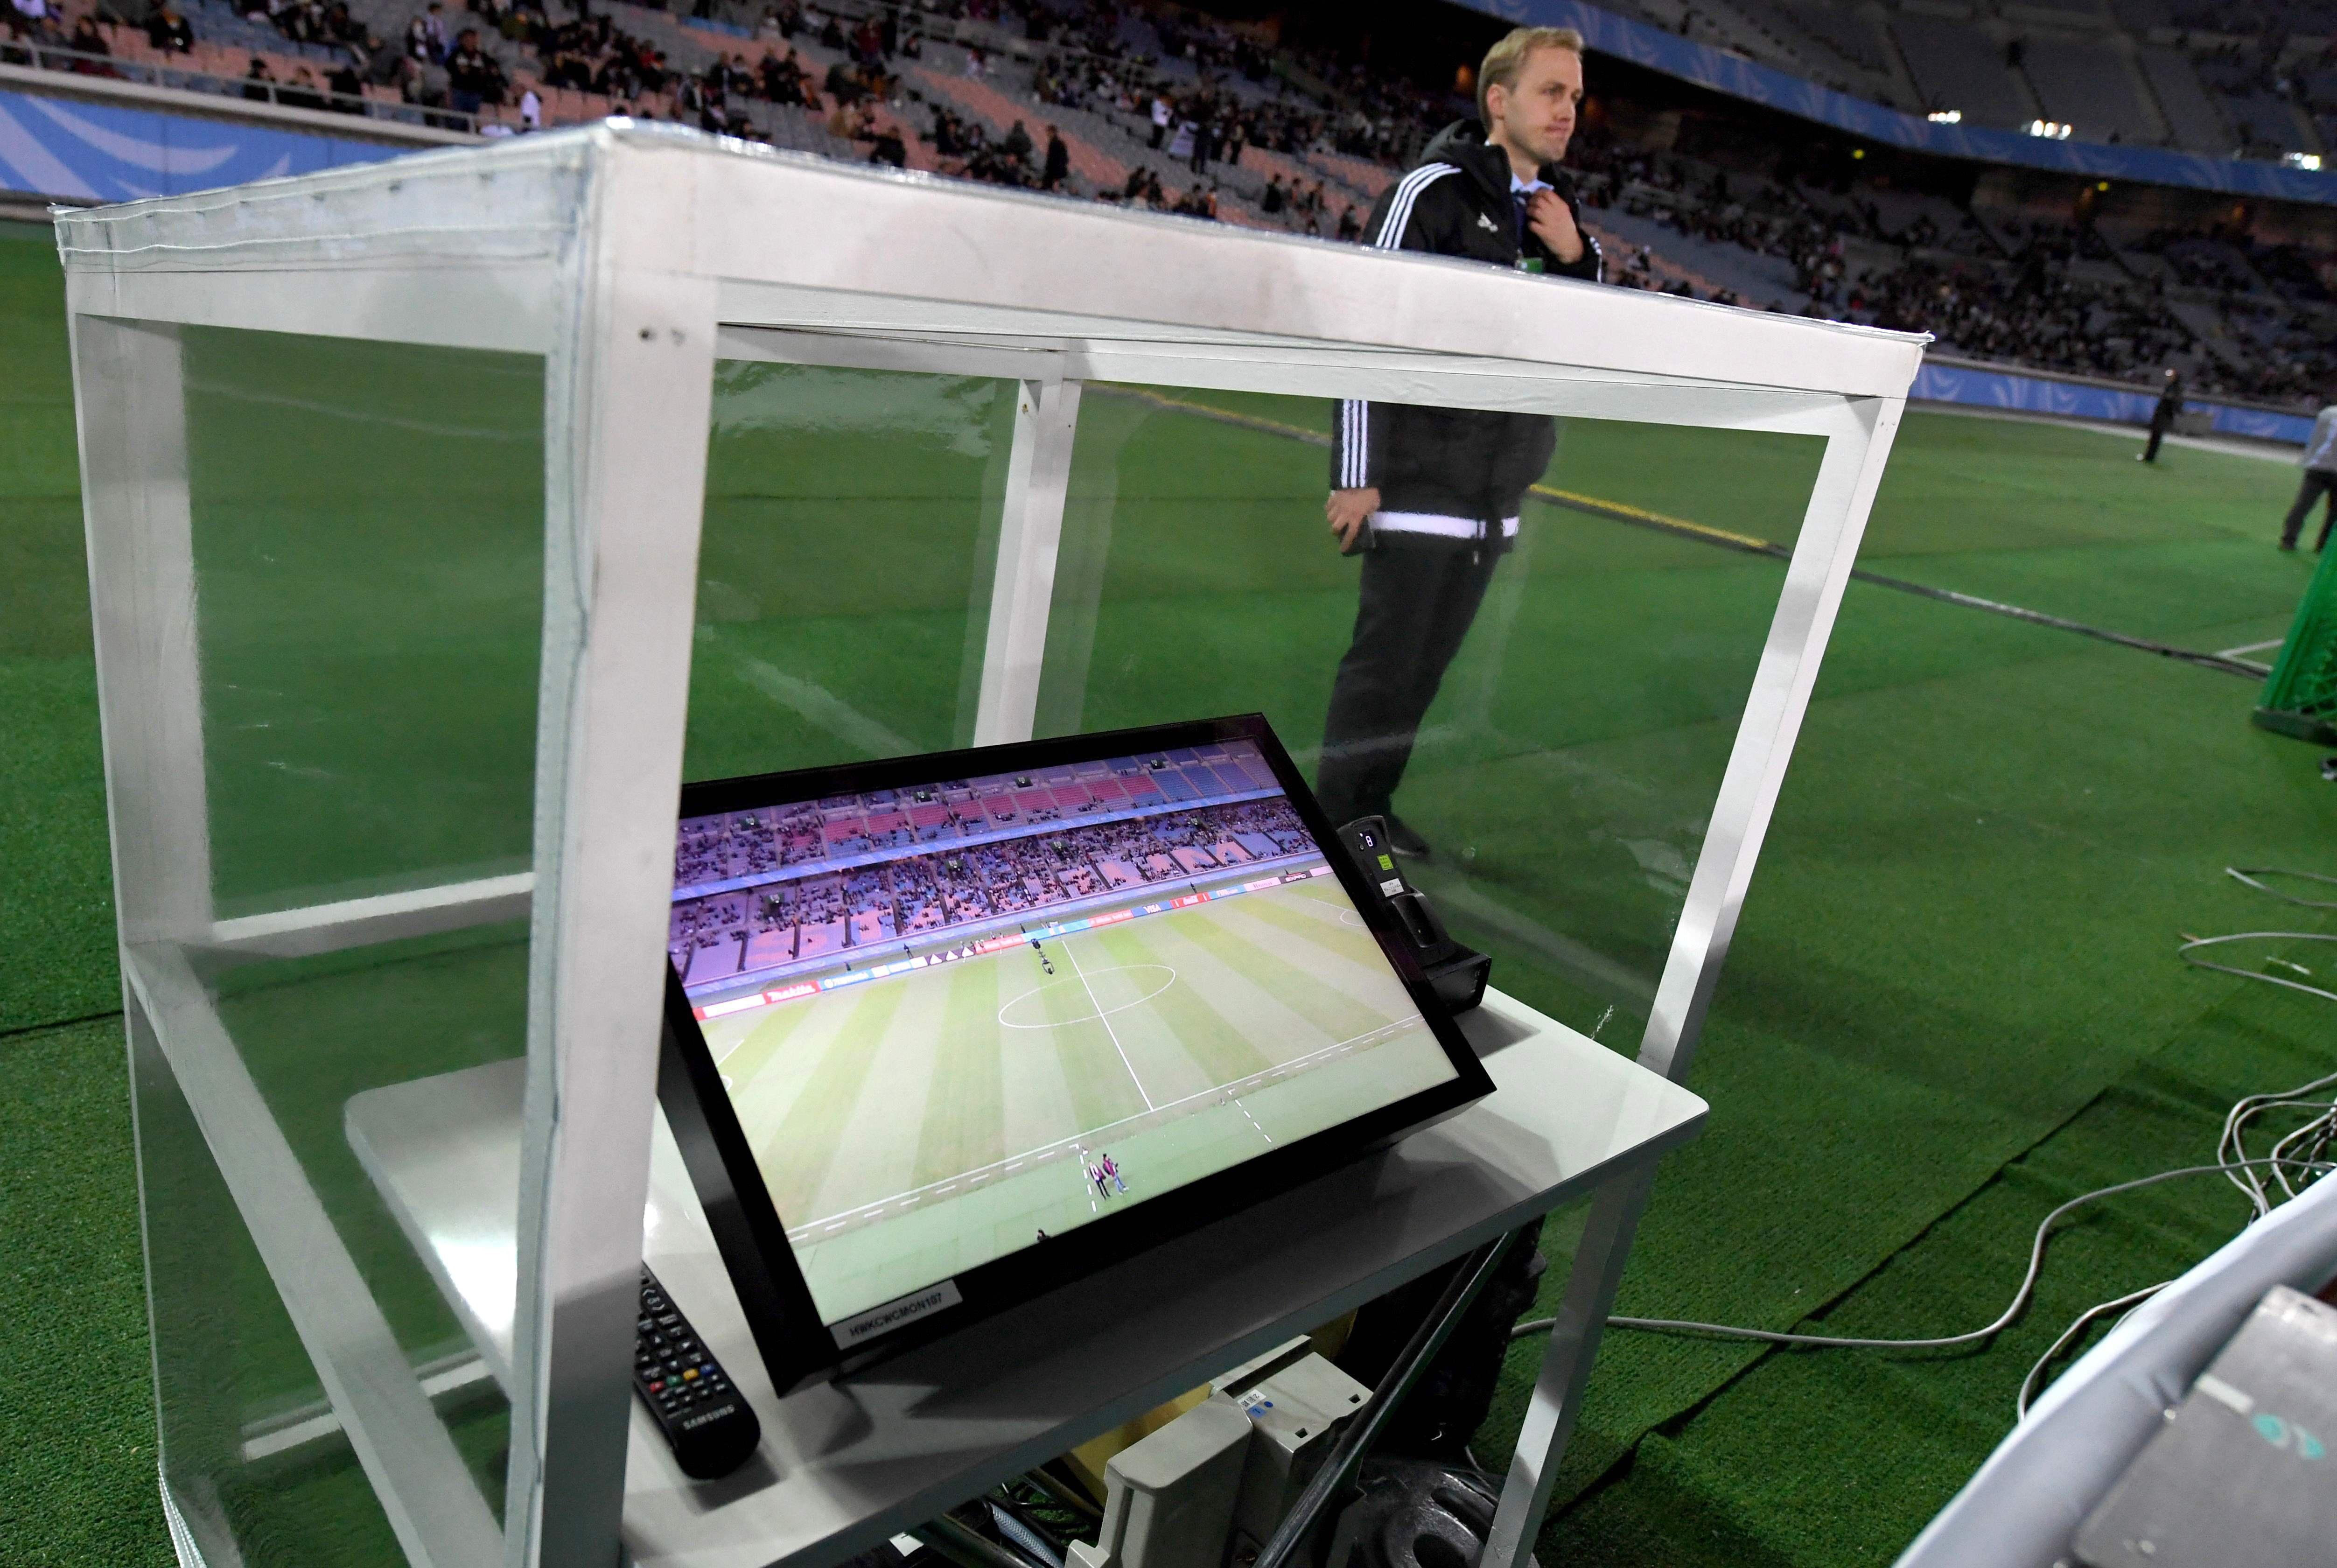 Video Assistant Referees have been trialled in various different domestic and international football competitions